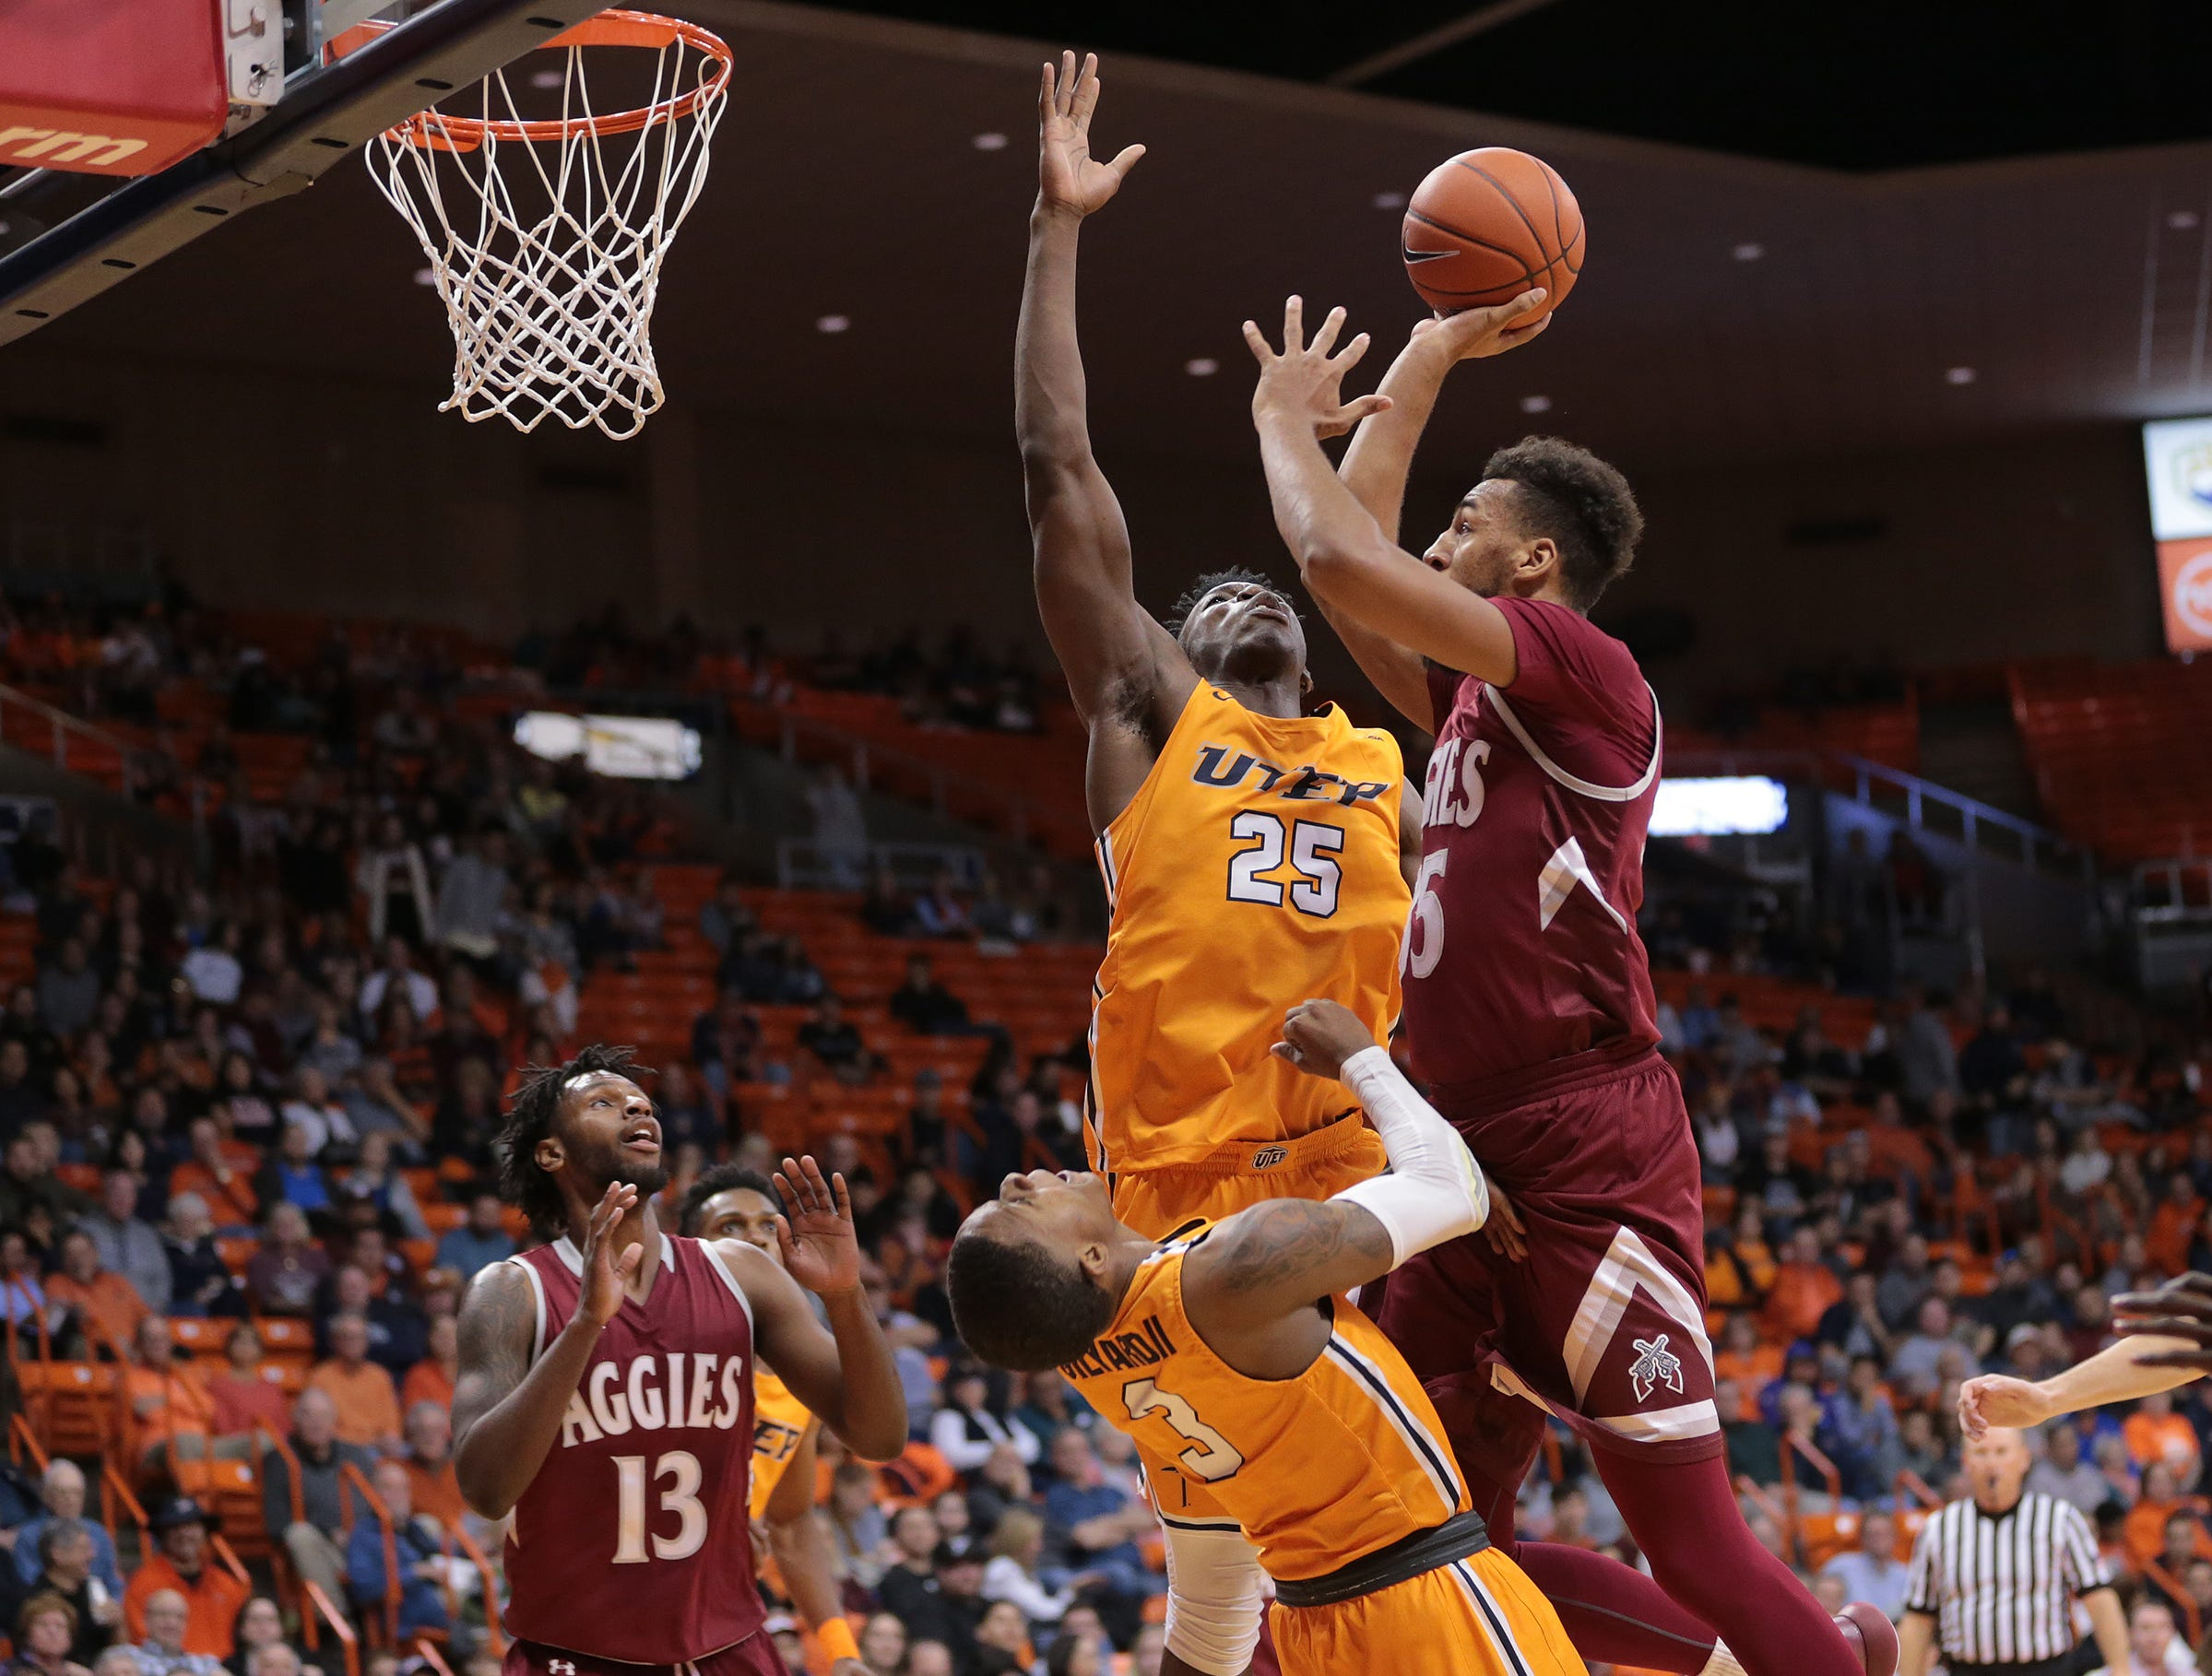 UTEP battled NMSU on Wednesday night at the Don Haskins Center. NMSU held on to win, 62-58.